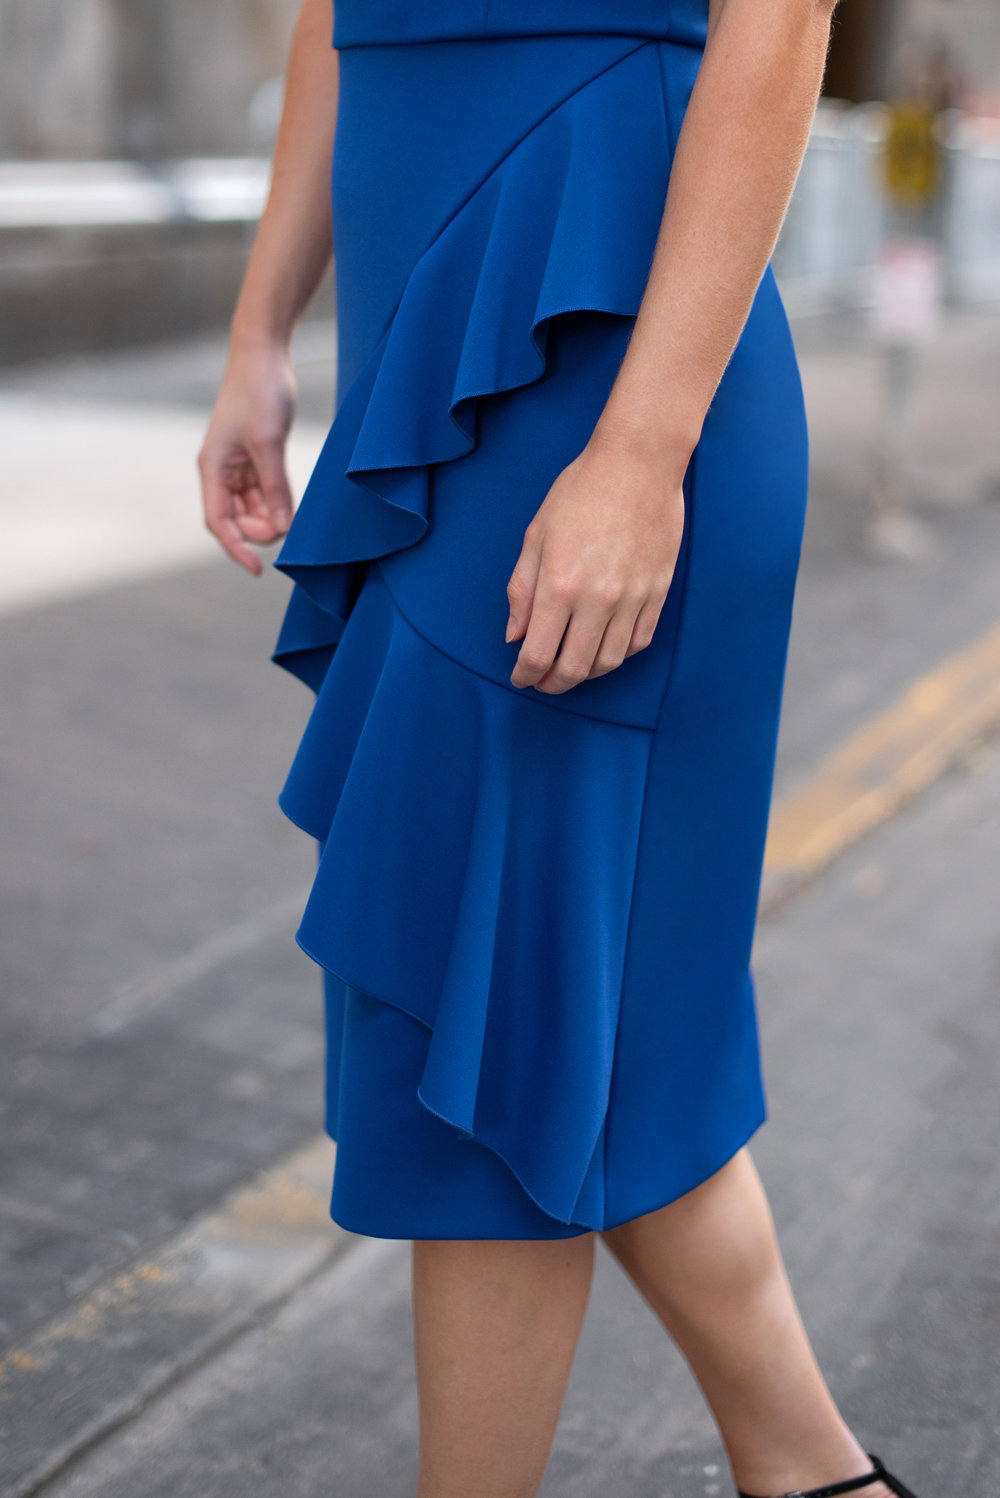 The Noreen Midi Dress - in rugby blue